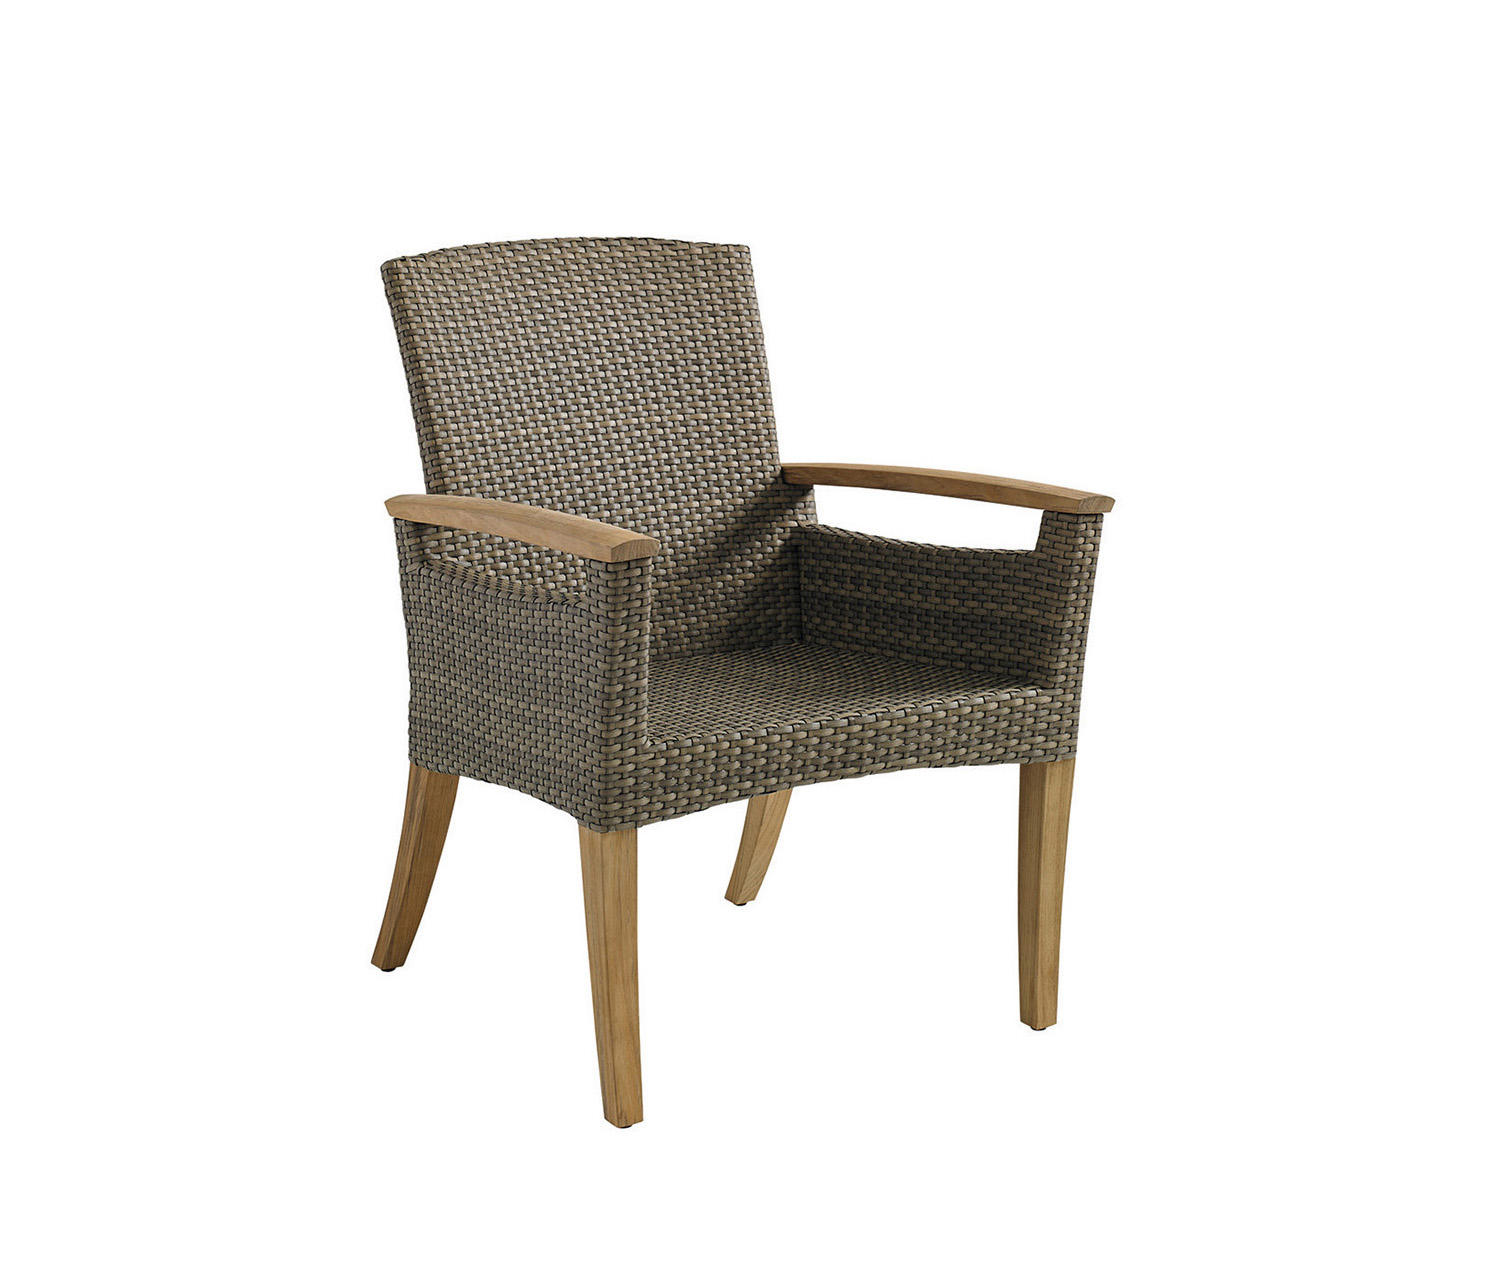 PEPPER MARSH DINING CHAIR WITH ARMS Garden chairs from